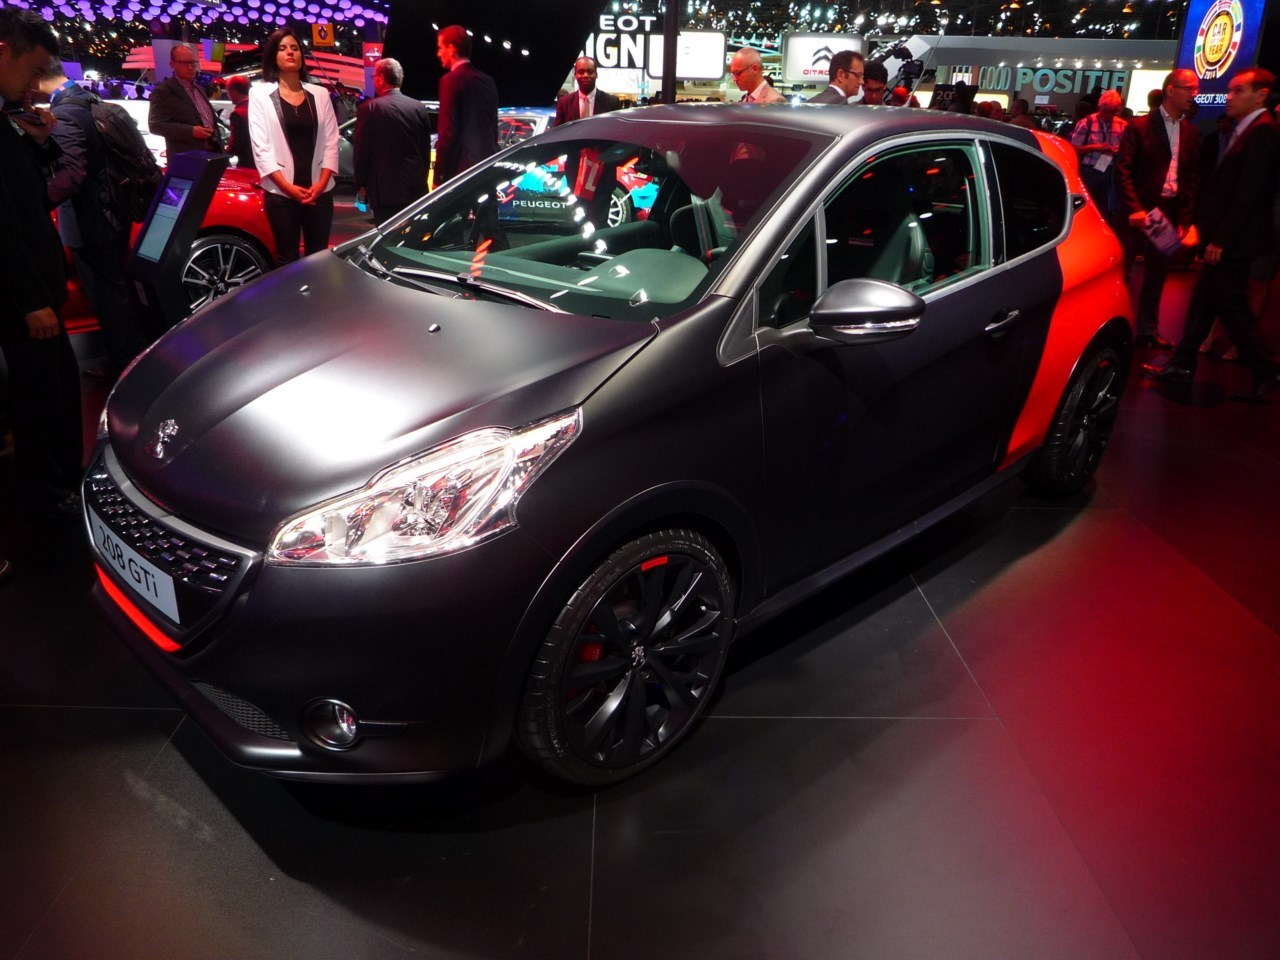 nouvelle peugeot 208 gti 30th photos et vid o au mondial de l 39 auto photo 1 l 39 argus. Black Bedroom Furniture Sets. Home Design Ideas